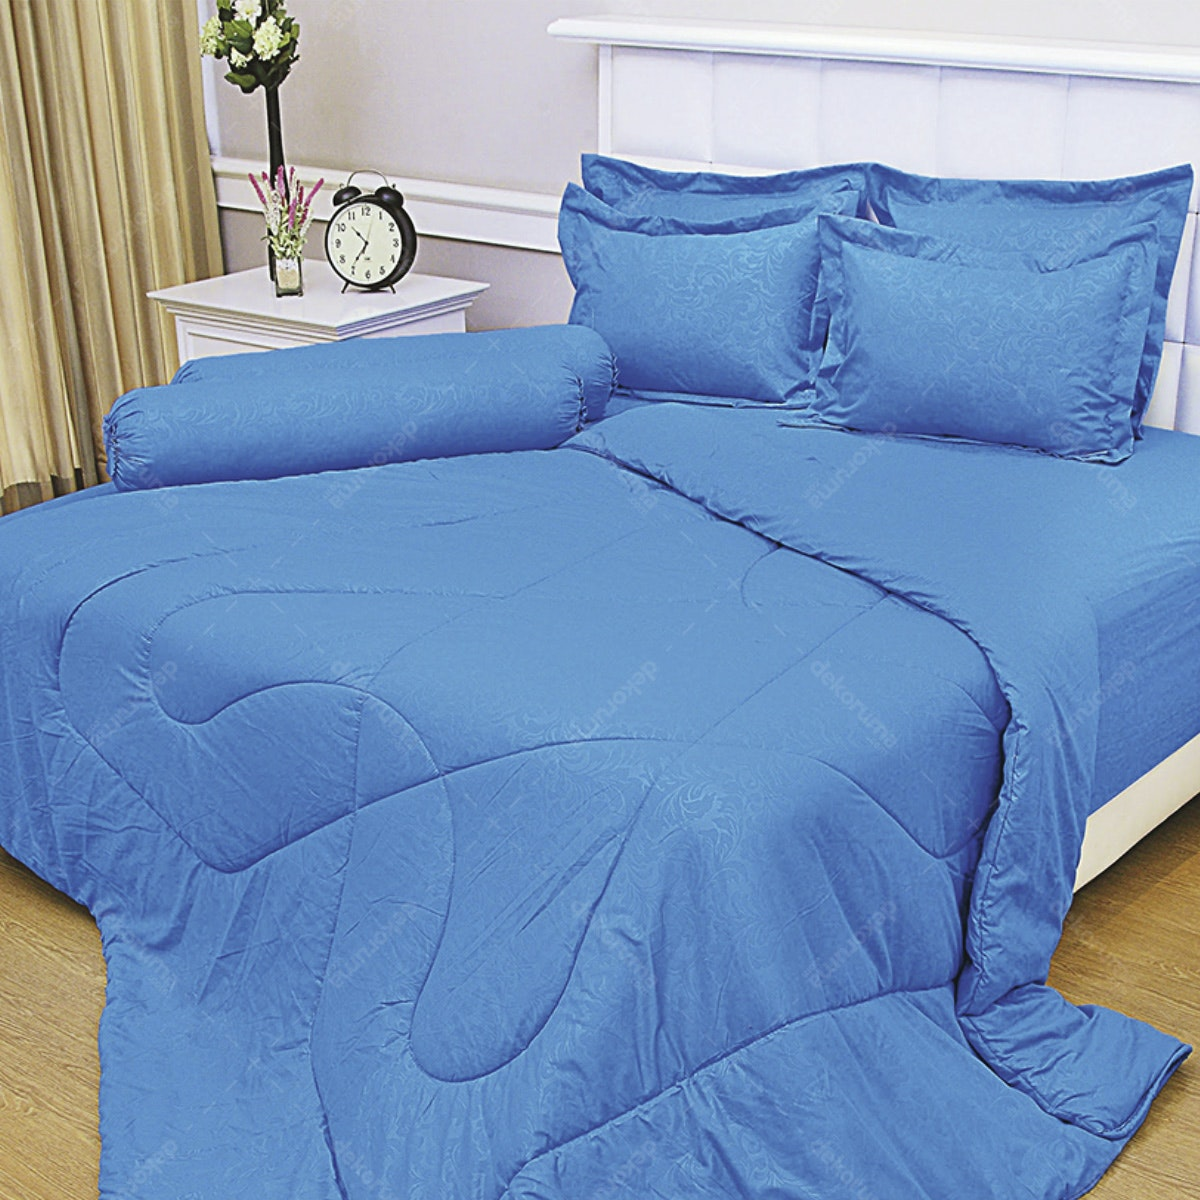 Vallery Quincy Bed Cover Blue BC 245x225cm